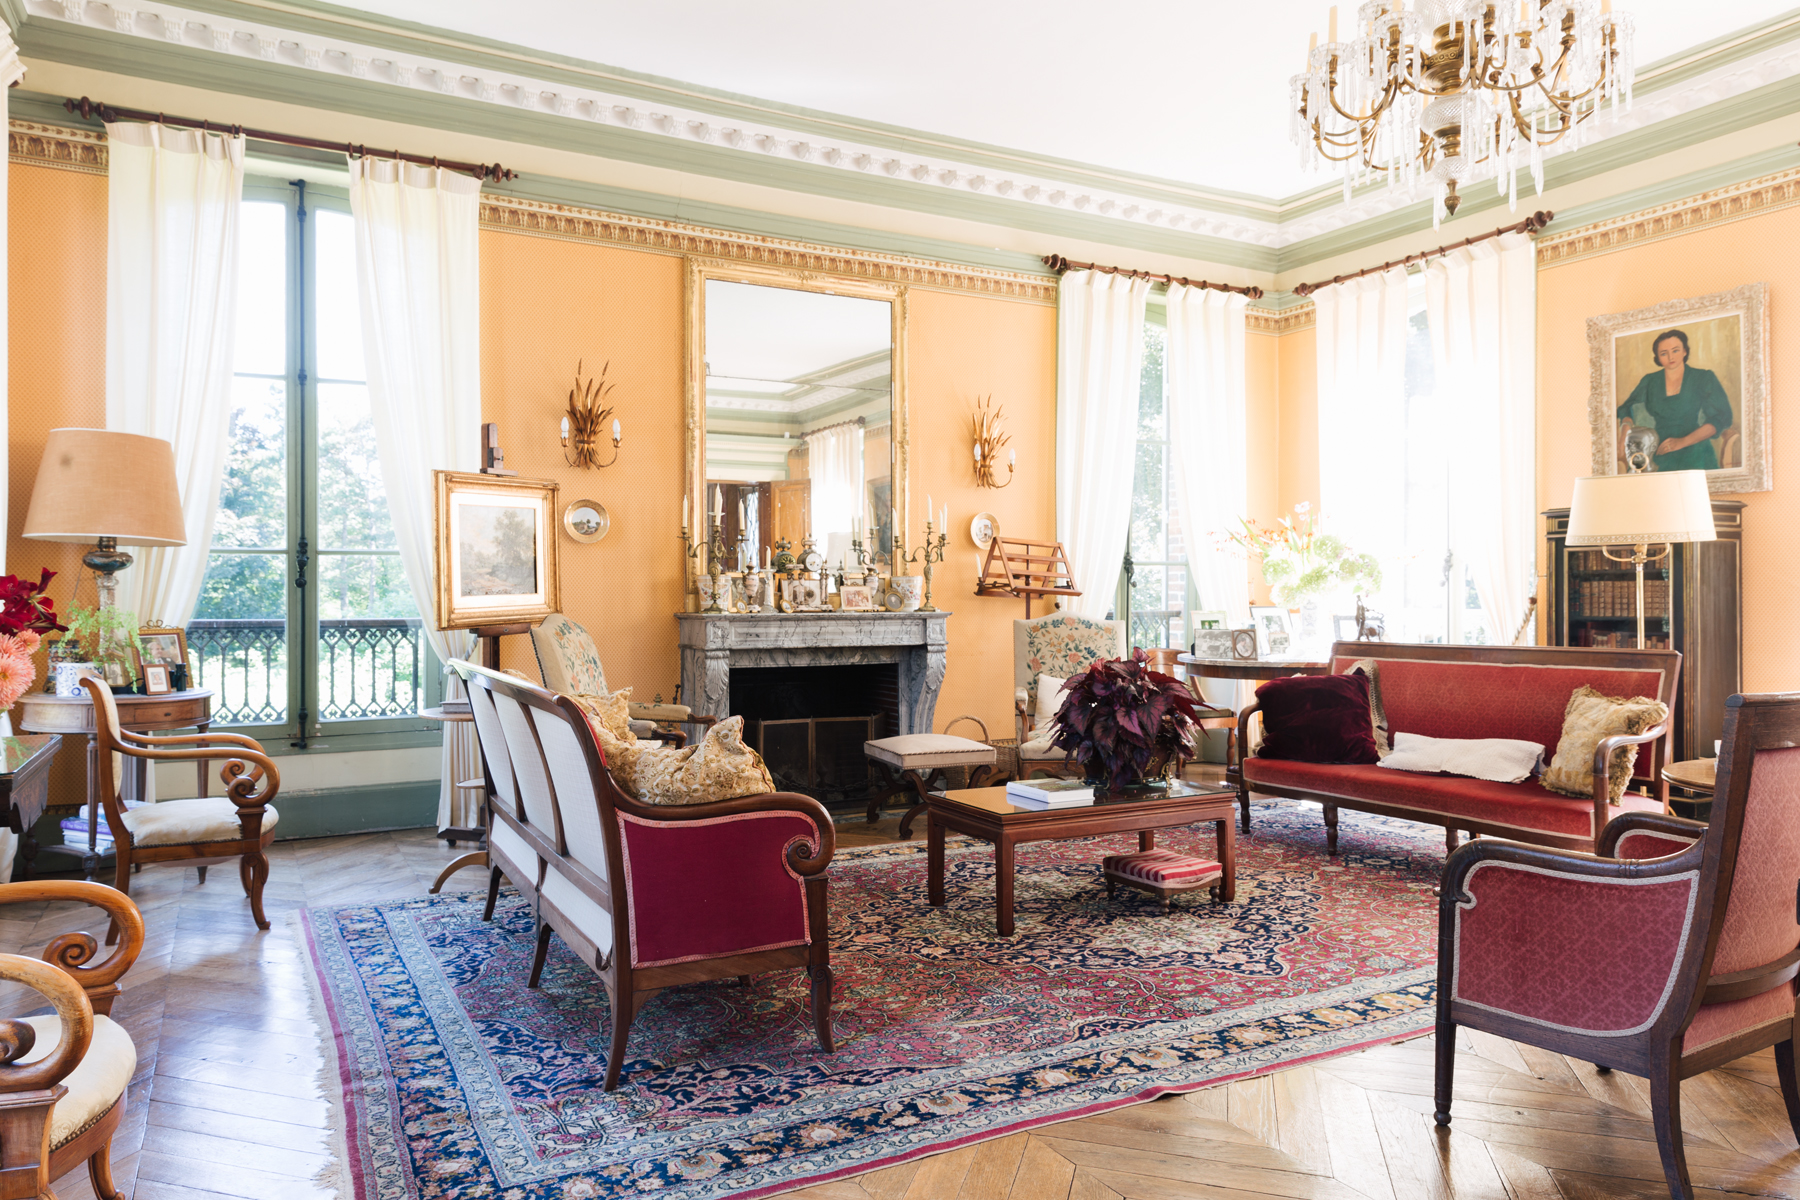 The grand salon, the regular spot for the evening aperitif.